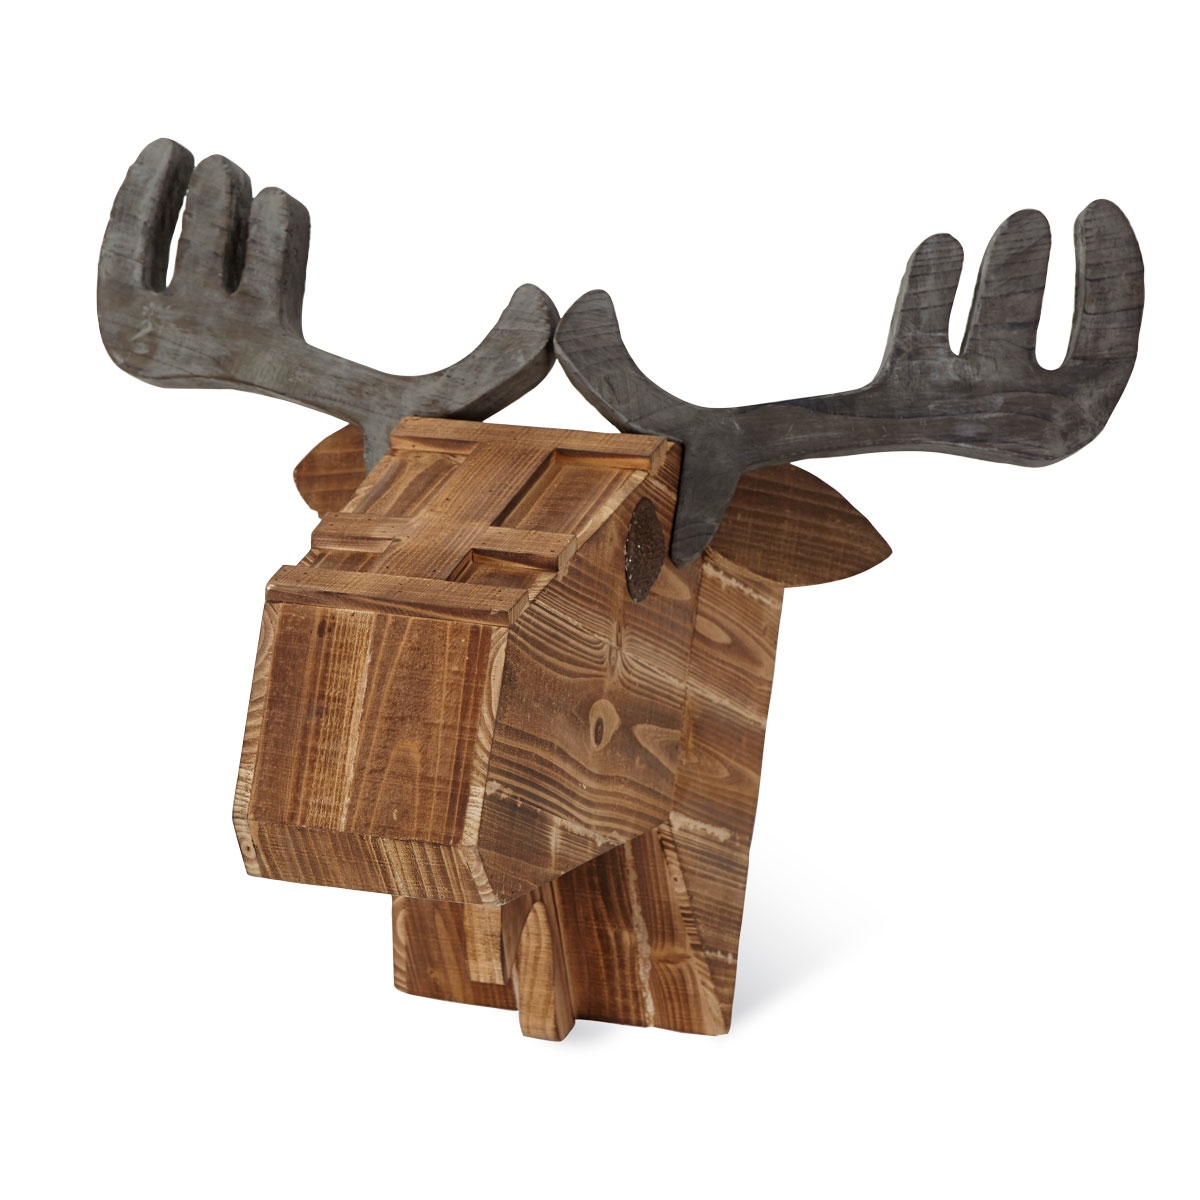 Moose Head Wall Decor  Plum & Post. Hotel With Jacuzzi In Room Ma. Fully Decorated Christmas Trees For Sale. Decorative Purple Pillows. Decorative Charger Plates. Decorating French Country. Outdoor Wall Decor Large. Small Room Portable Air Conditioner. Home Decorator Showcase